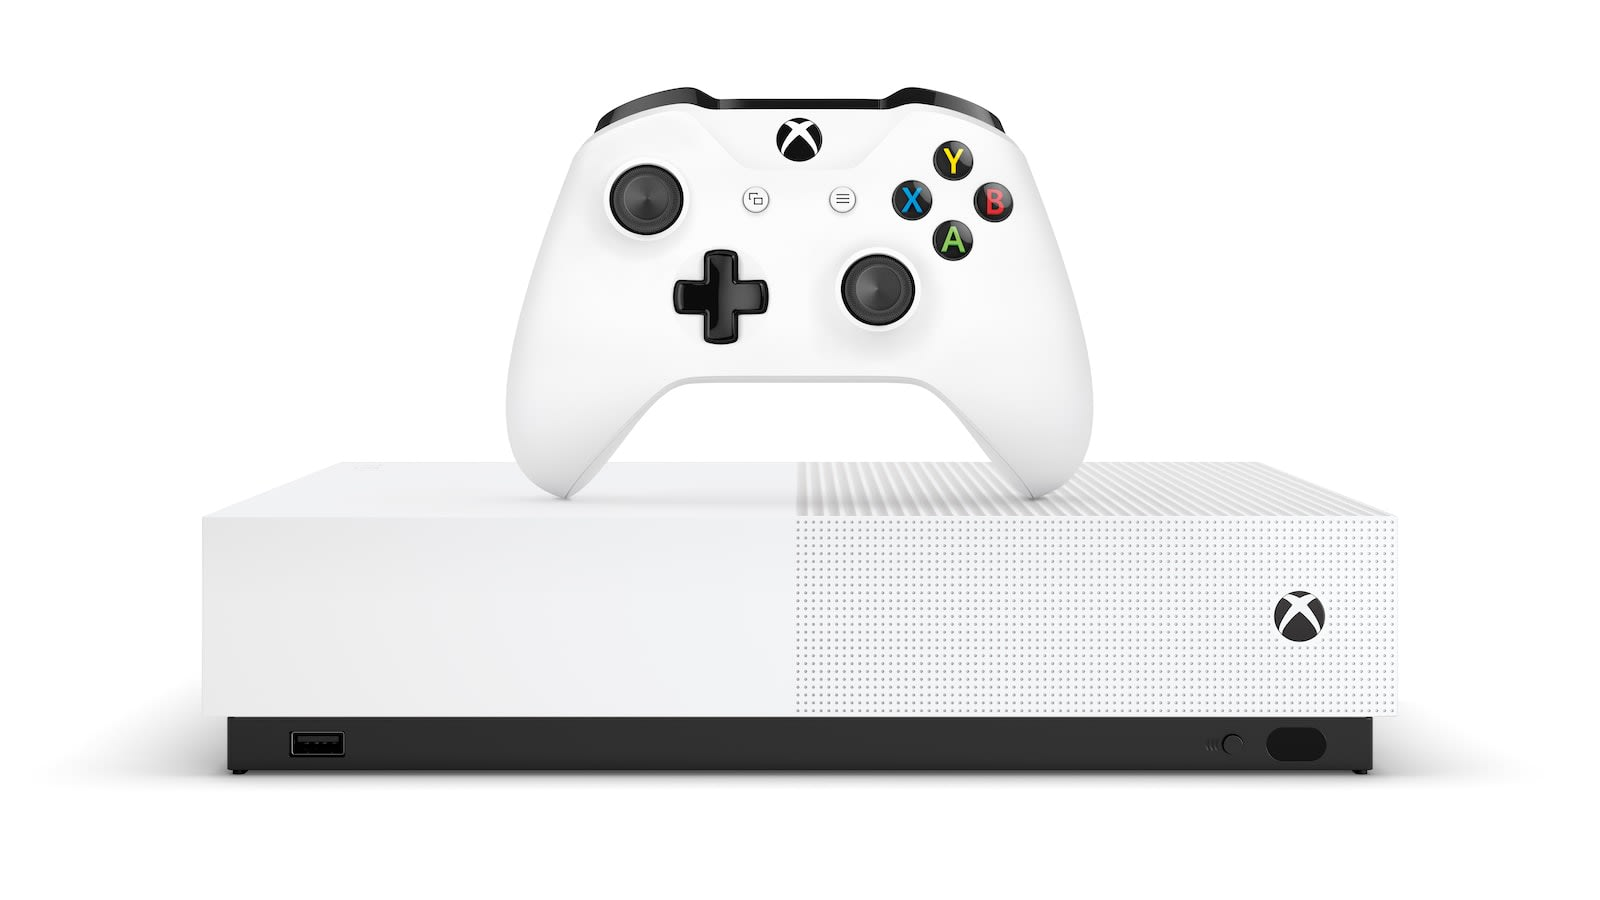 The Disc Free Xbox One S Hits Stores On May 7th For 250